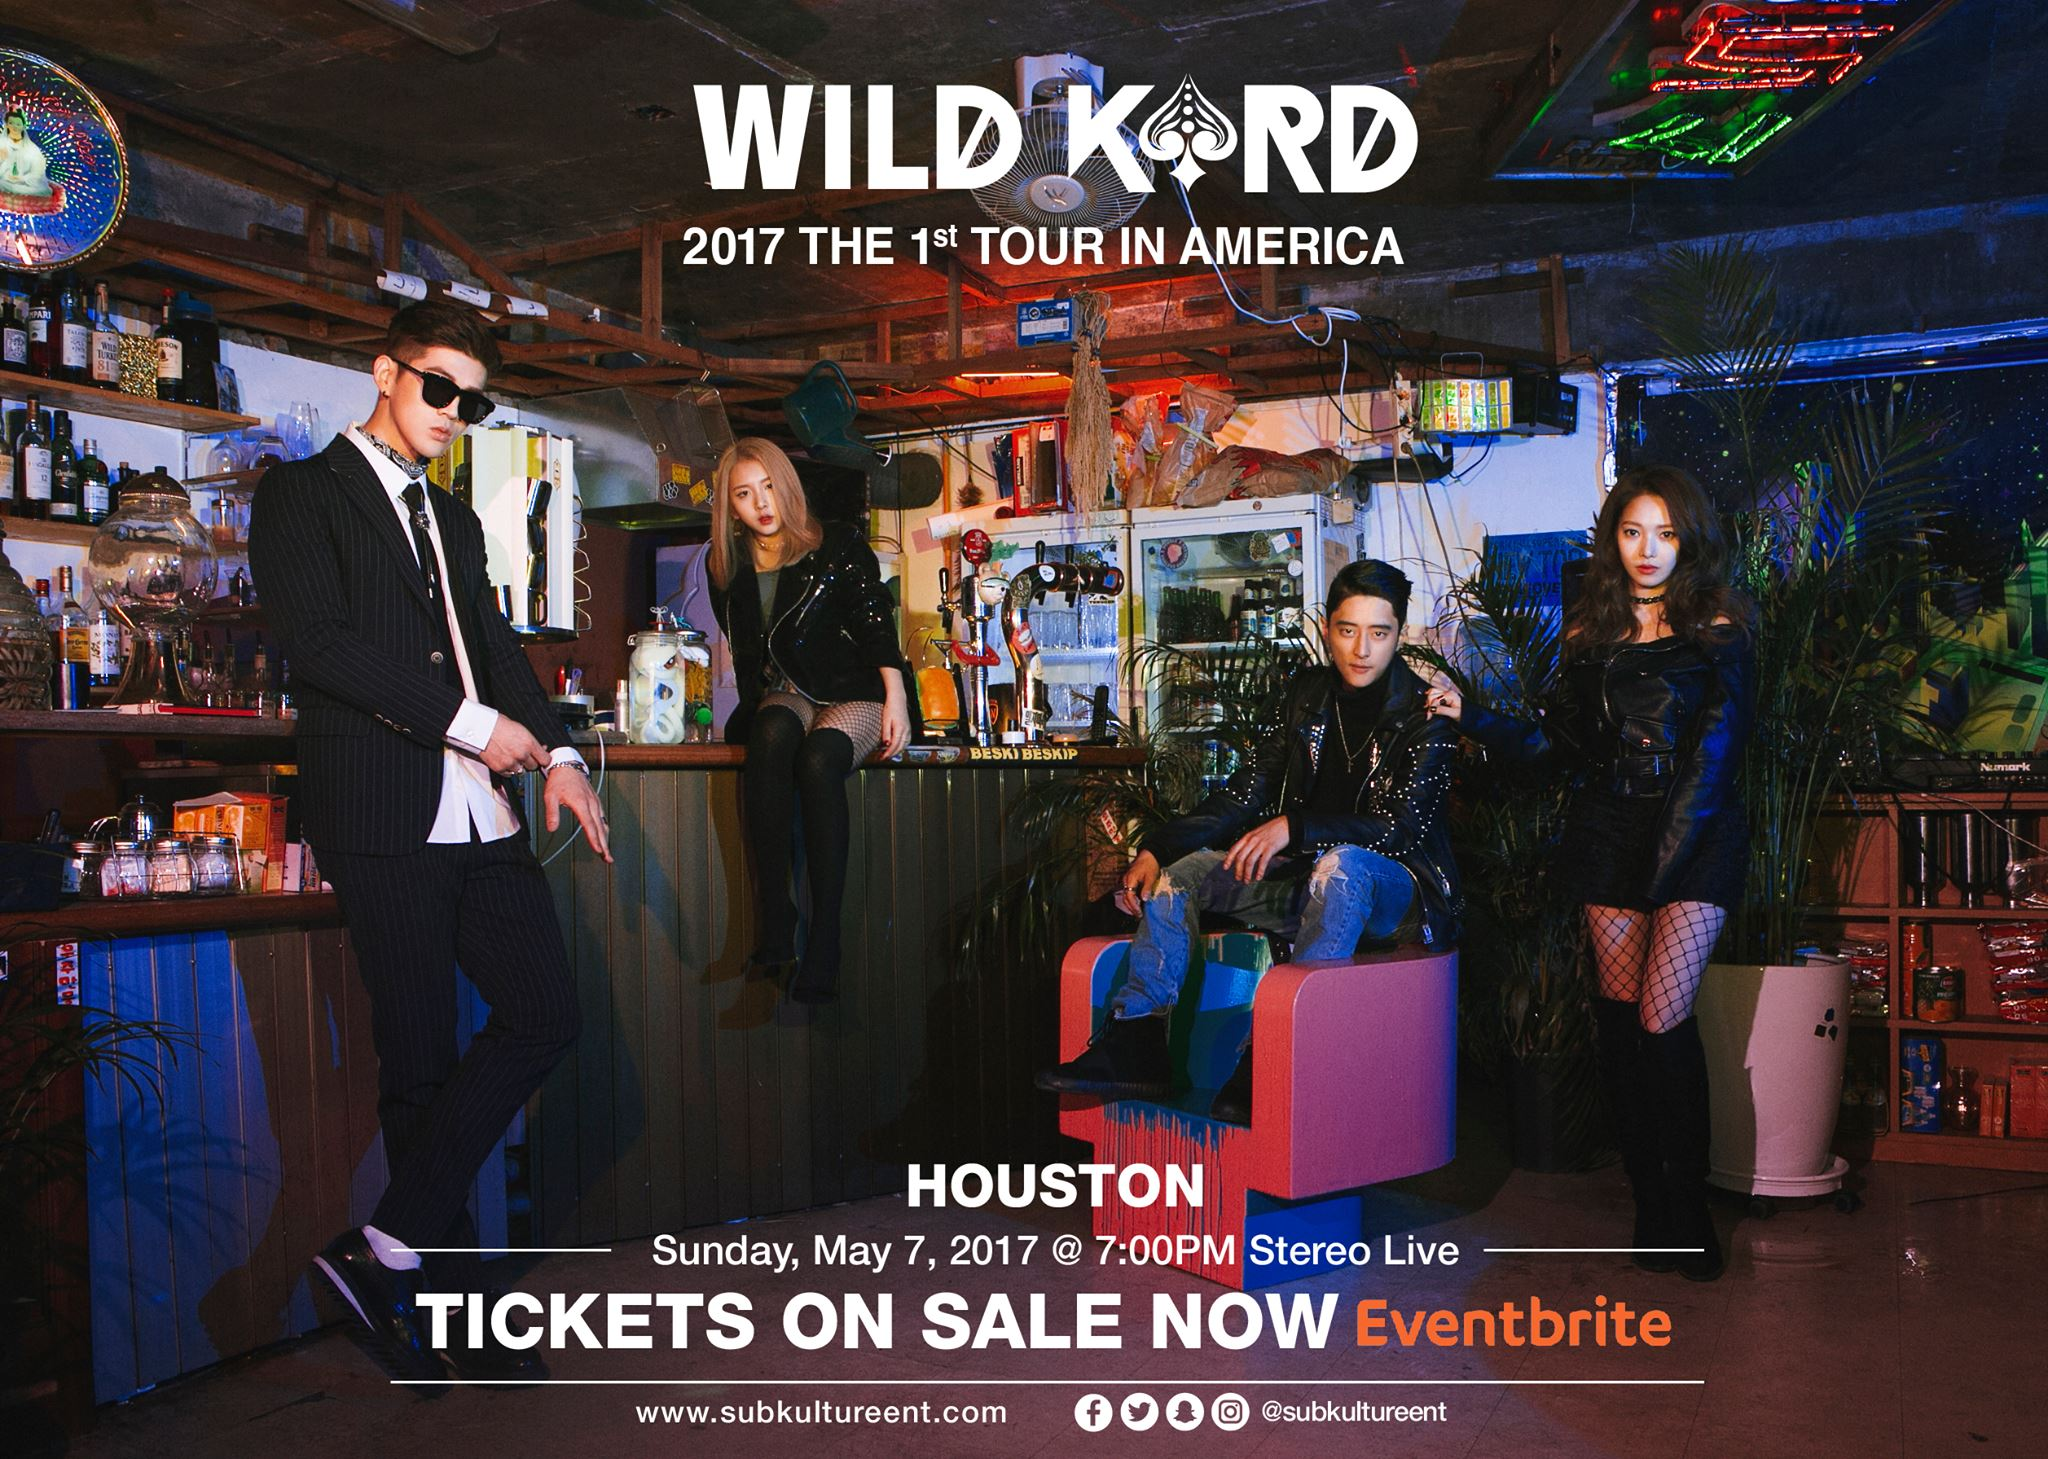 K.A.R.D Set To Hold First North American Tour